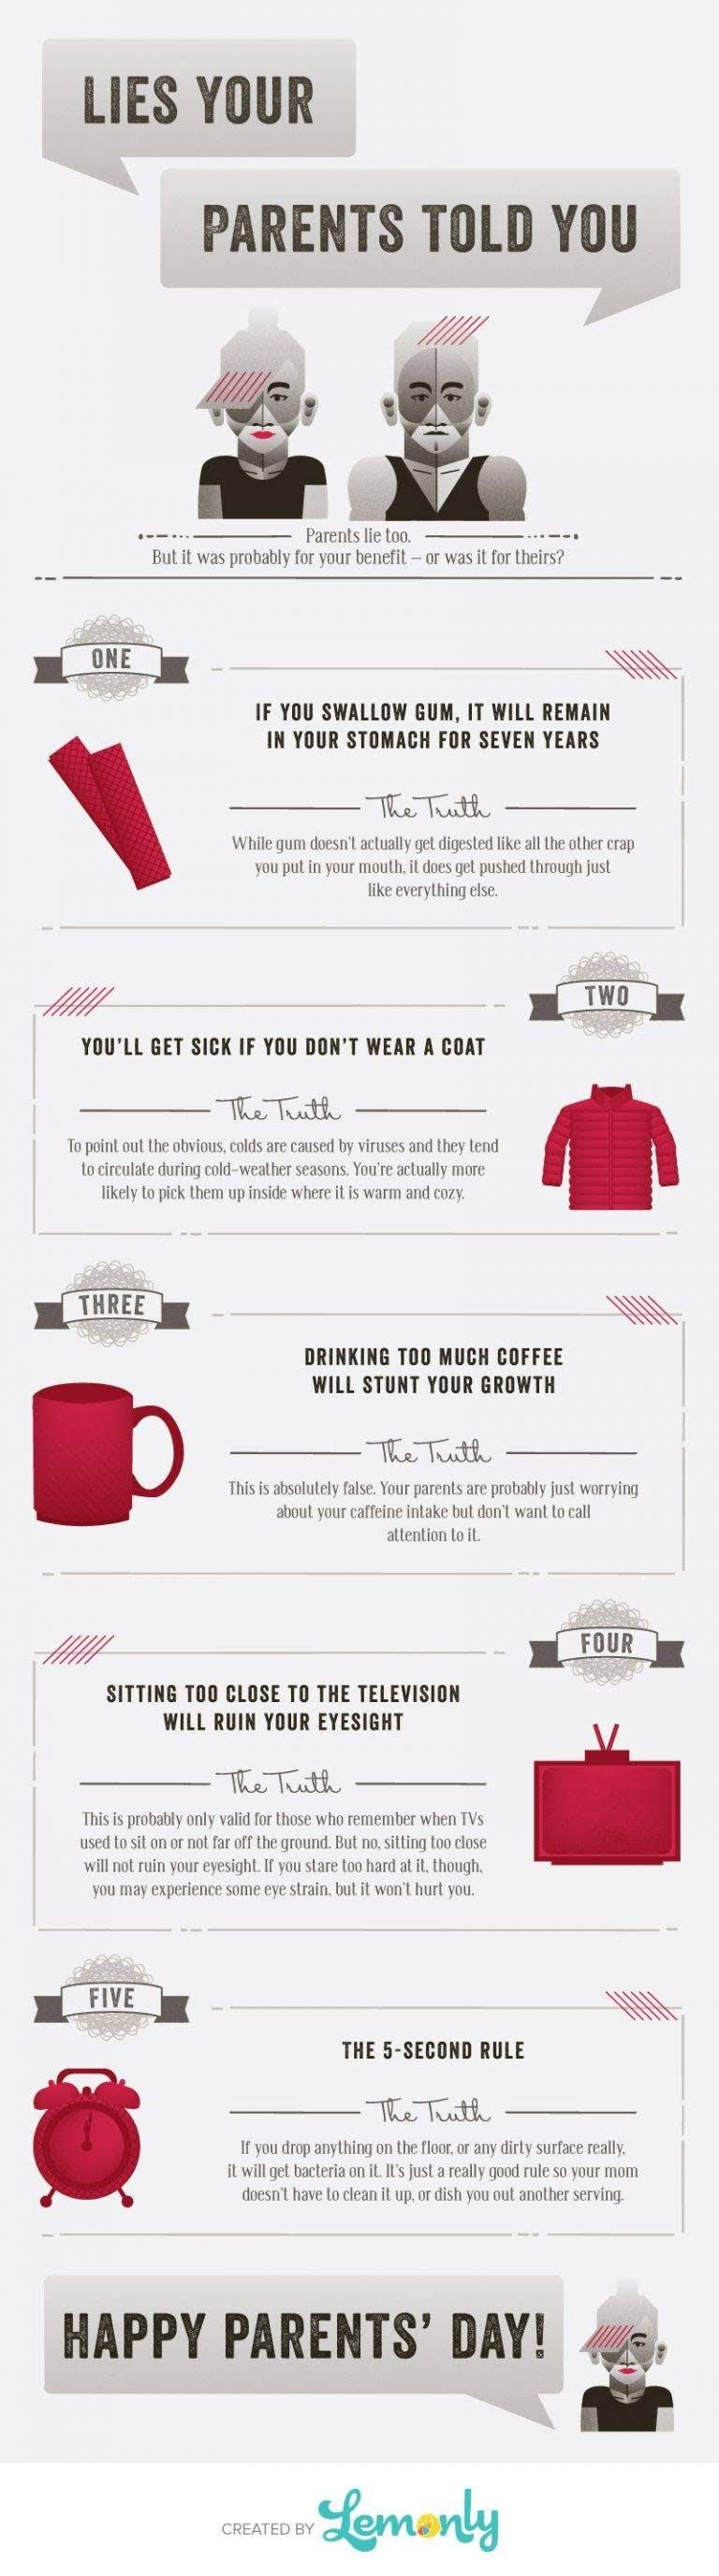 Happy Parents' Day! Celebrate With An #infographic